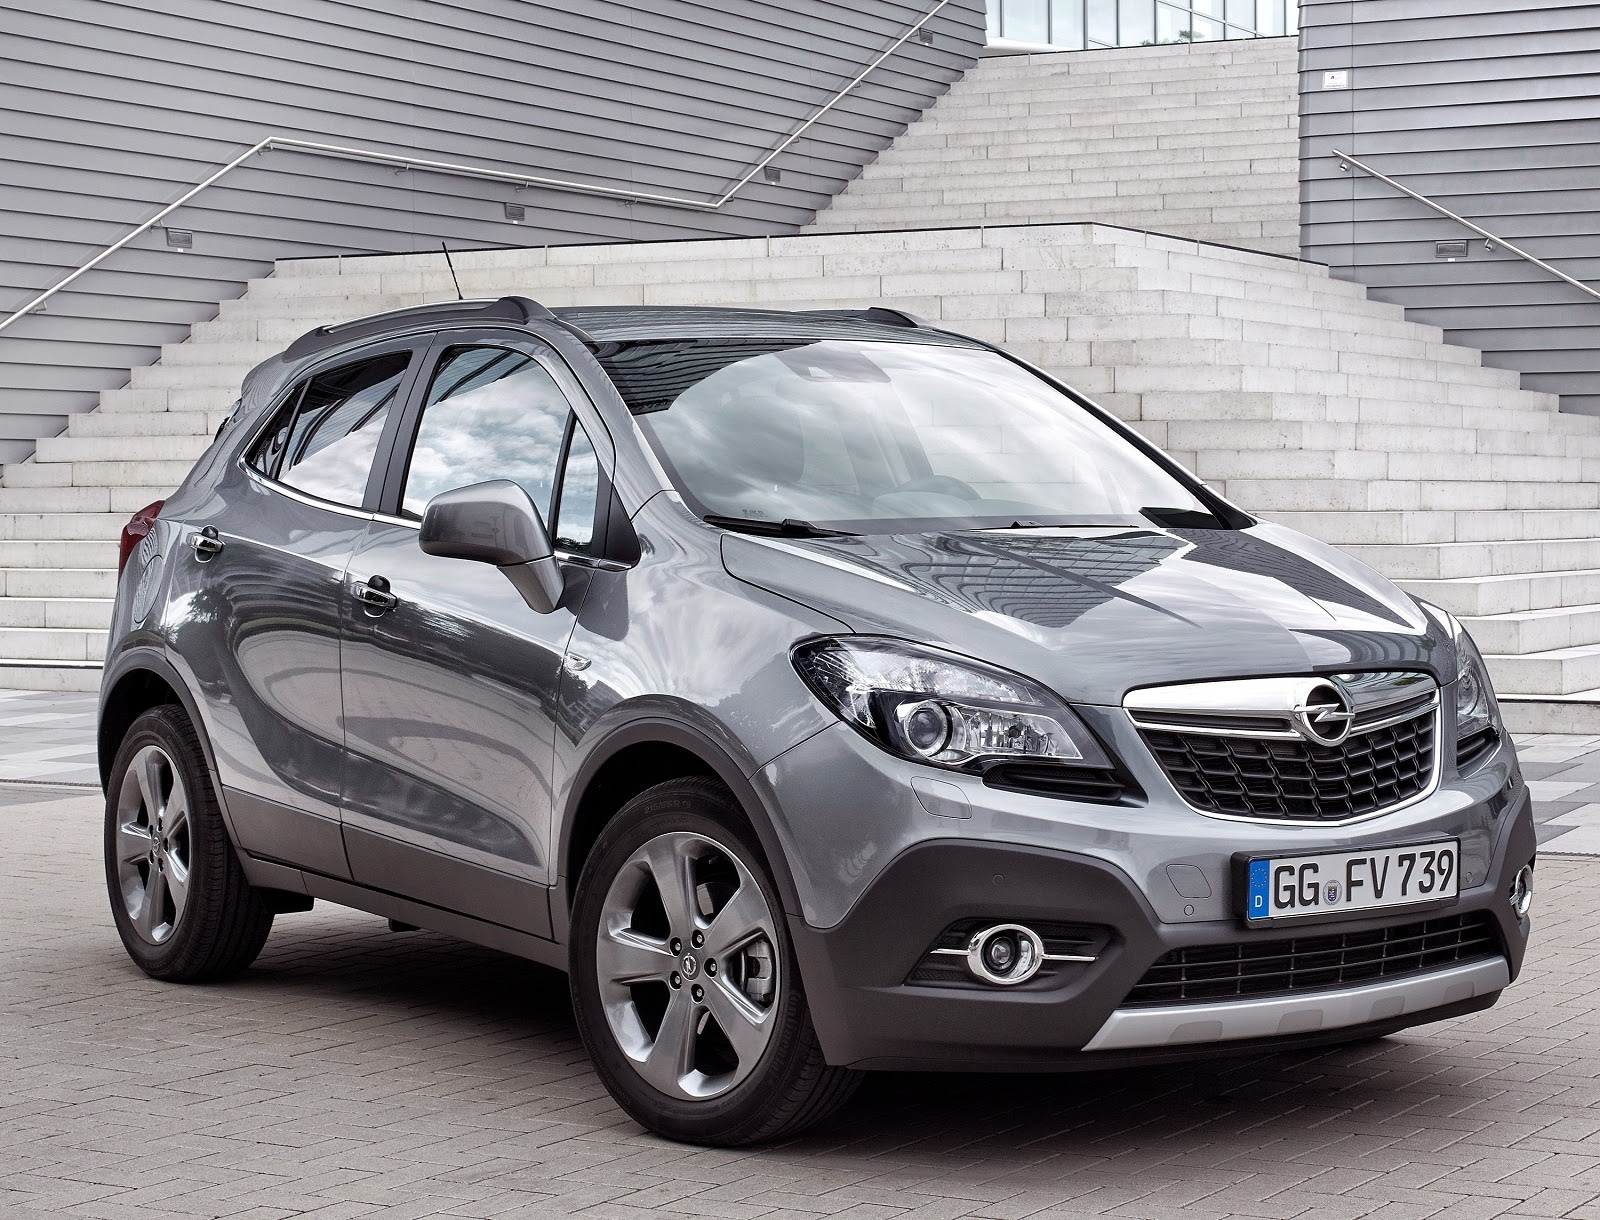 opel mokka 1 6 cdti turbo diesel compact suv car reviews new car pictures for 2018 2019. Black Bedroom Furniture Sets. Home Design Ideas